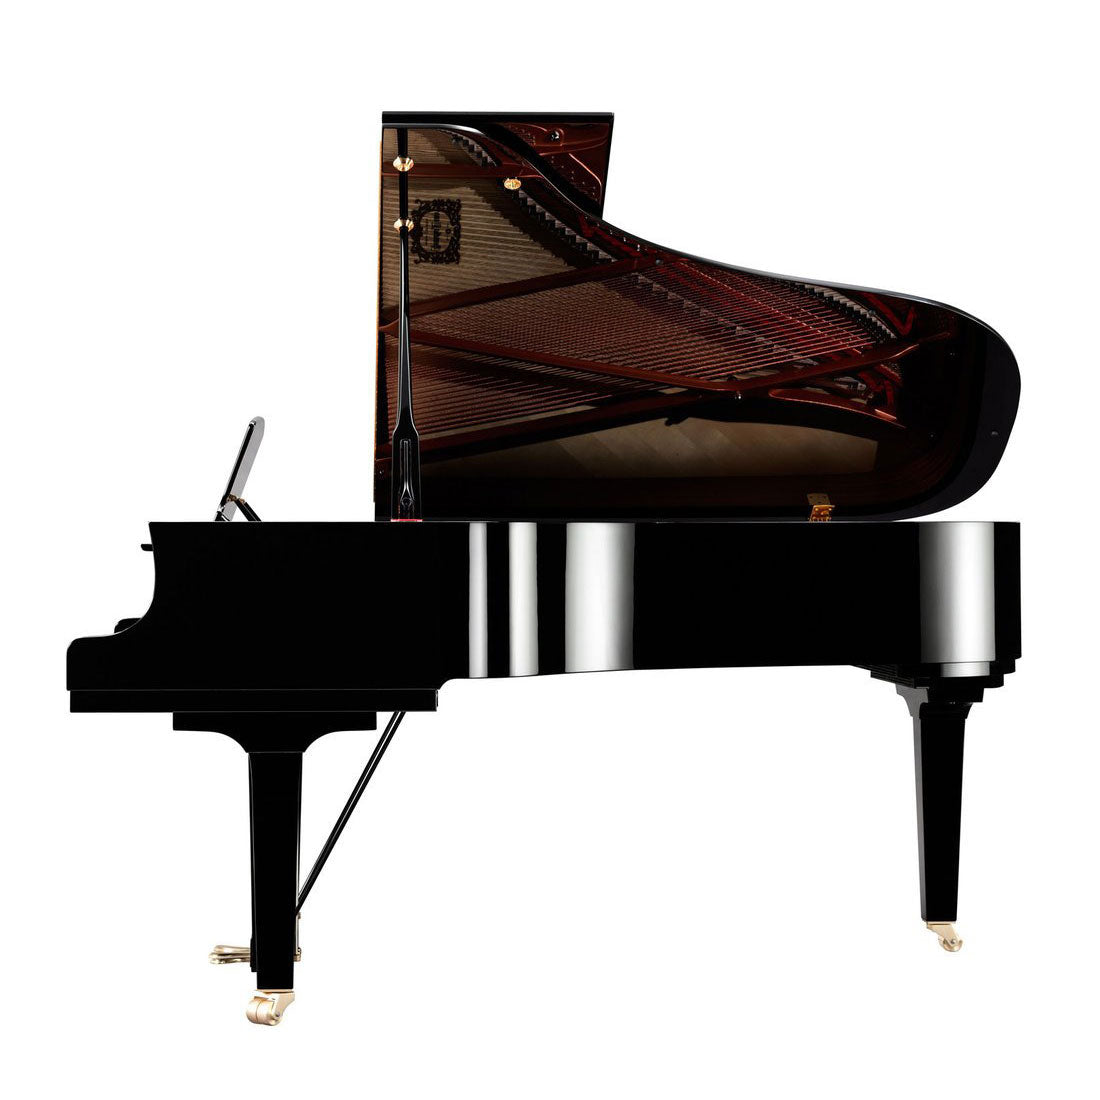 Yamaha C5X grand piano